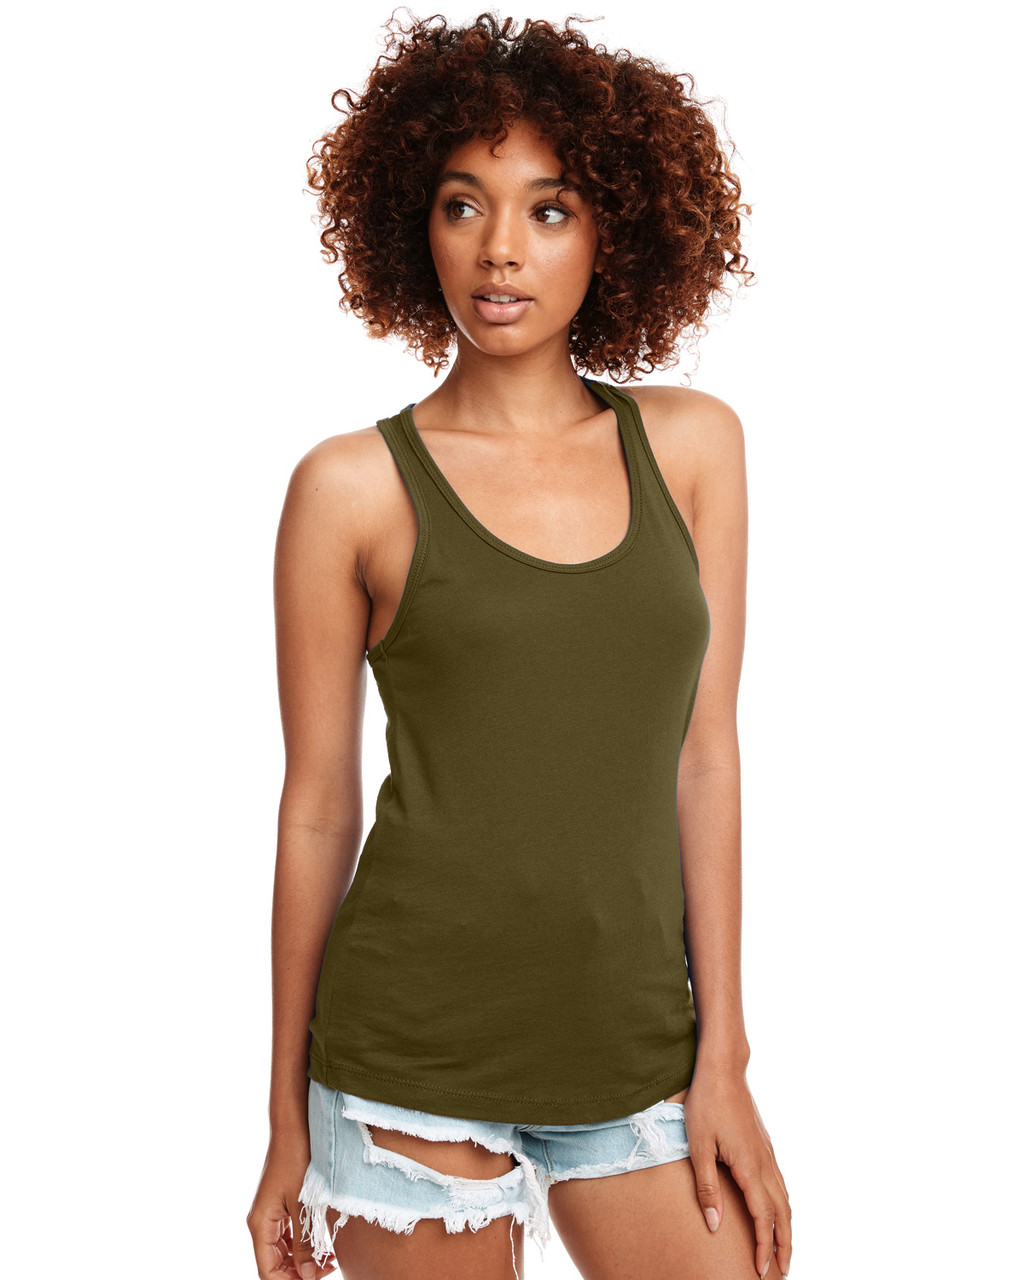 Military Green - N1533 Next Level Ideal Racerback Tank Top | Blankclothing.ca